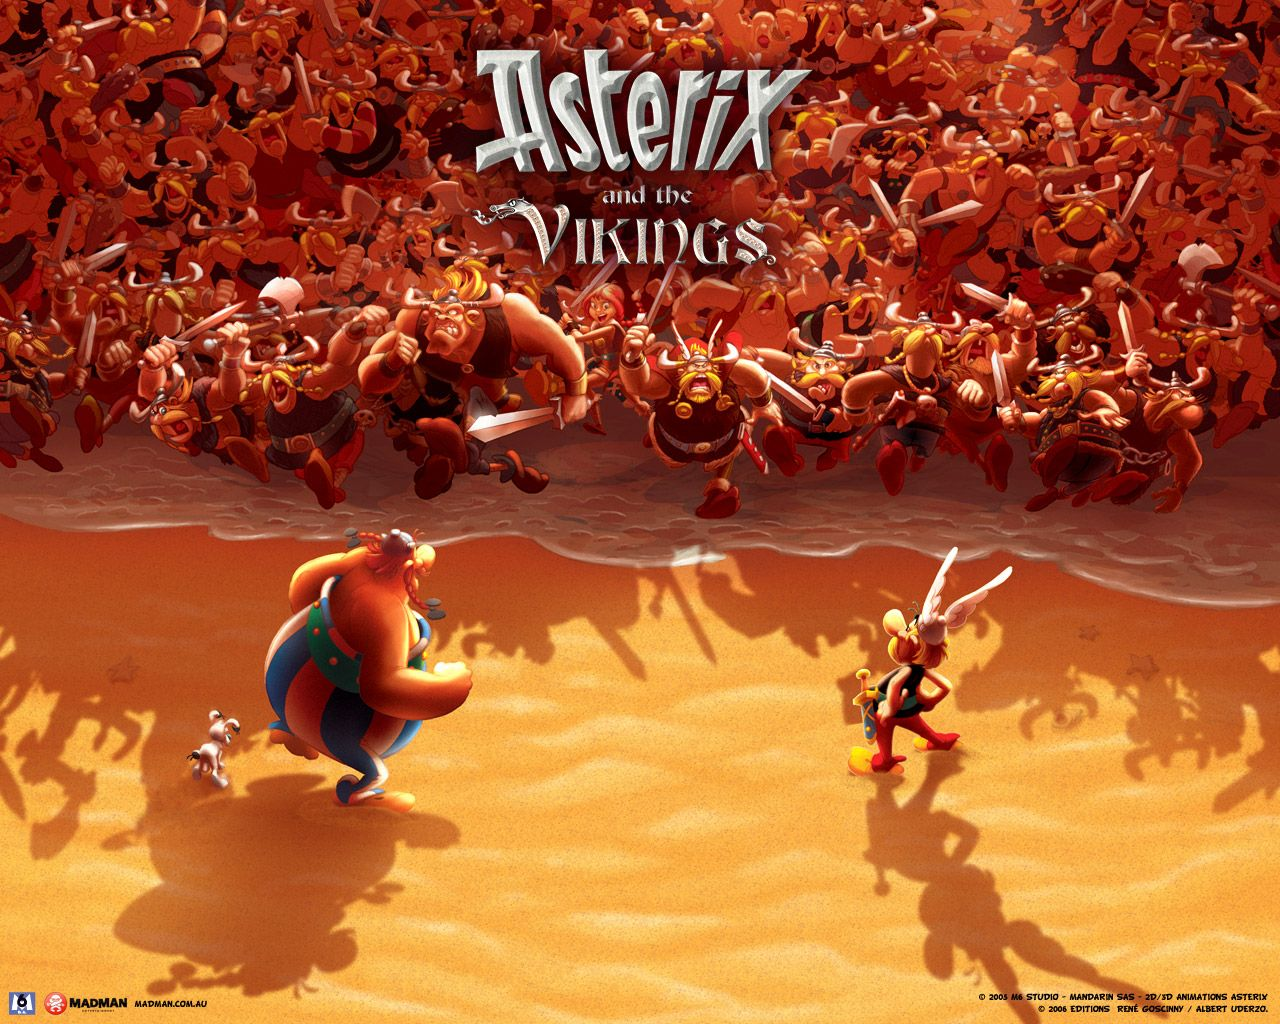 Asterix and the Vikings is an animated feature film, produced in France and Denmark, and directed by Stefan Fjeldmark and Jesper Møller. Description from cartoon-excellence.com. I searched for this on bing.com/images